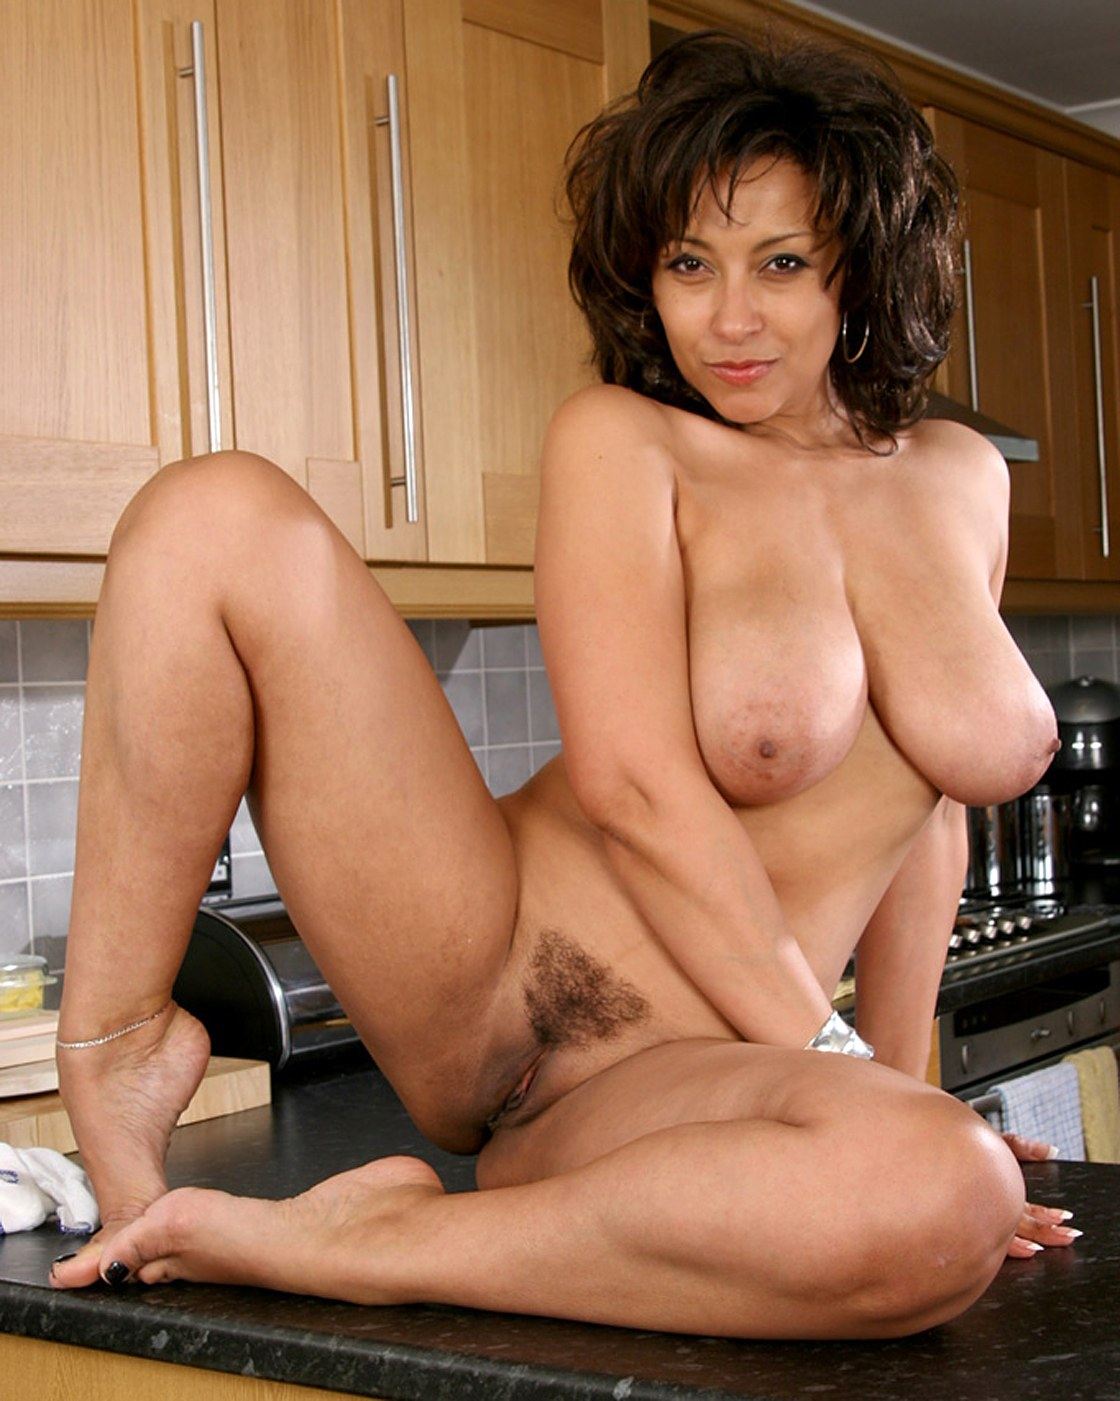 Busty brunette with hairy pussy in kitchen